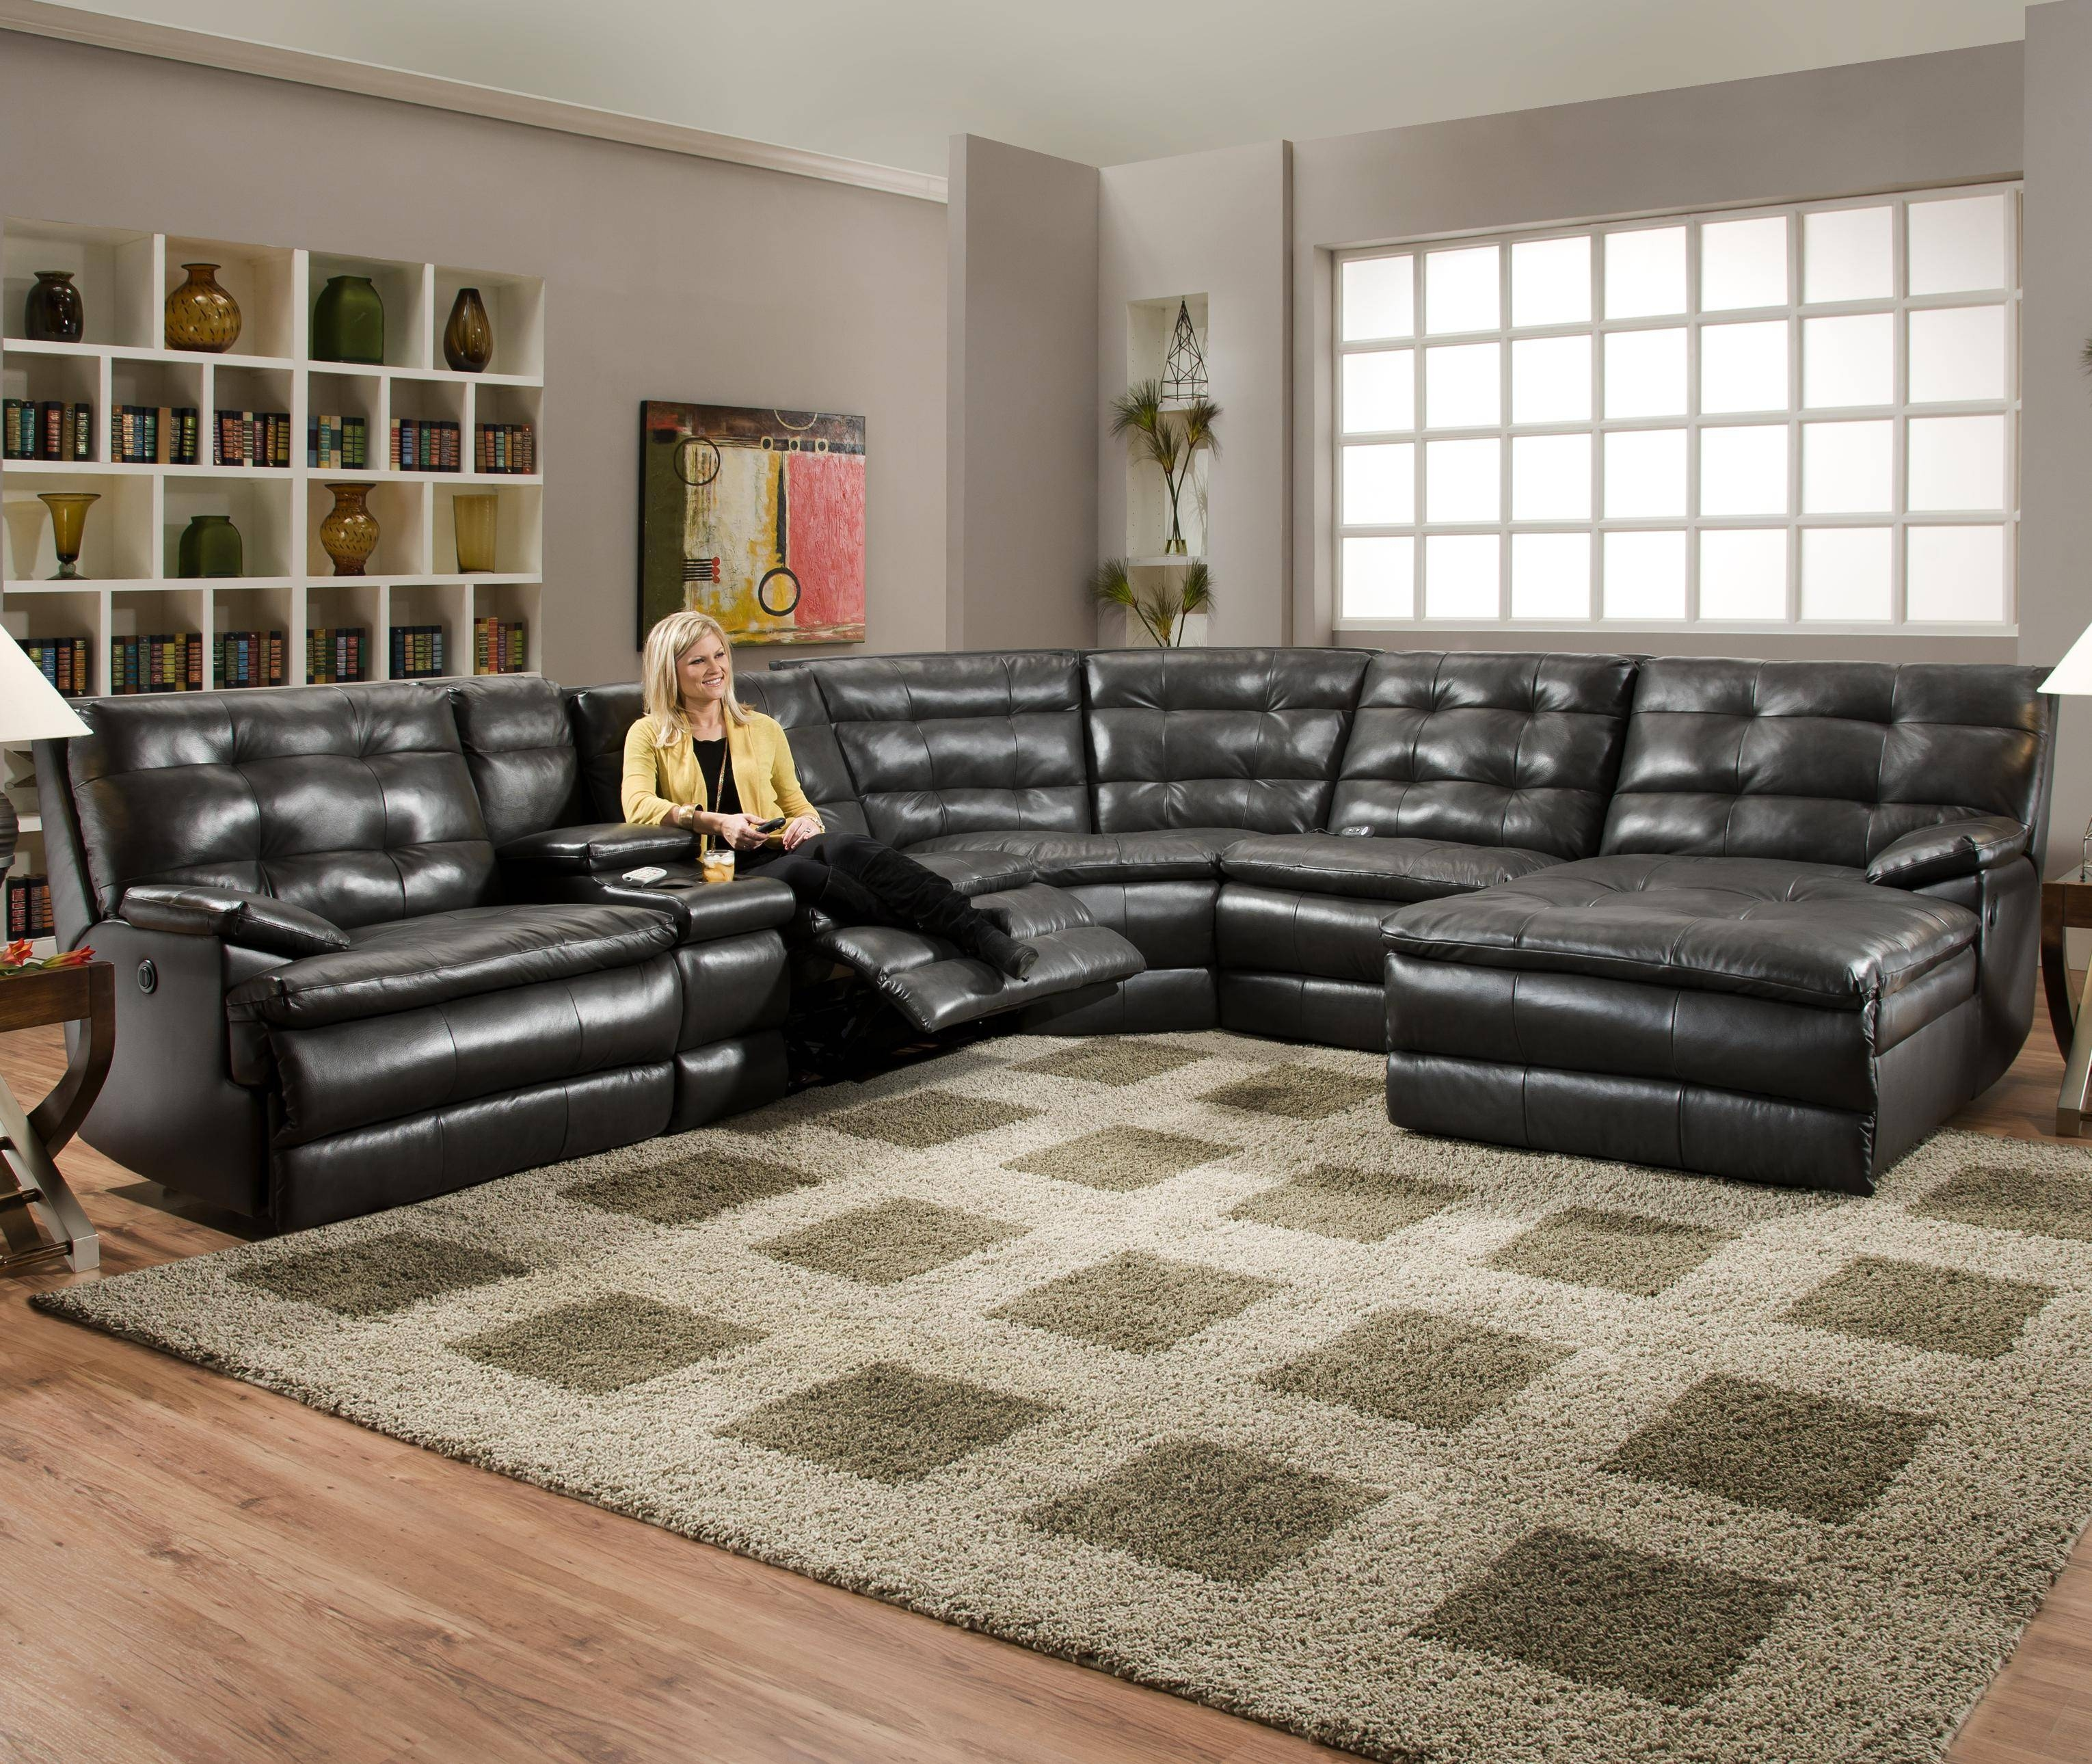 Oversized Sectional Sofas For Sale | Tehranmix Decoration intended for Large Sofa Sectionals (Image 22 of 25)